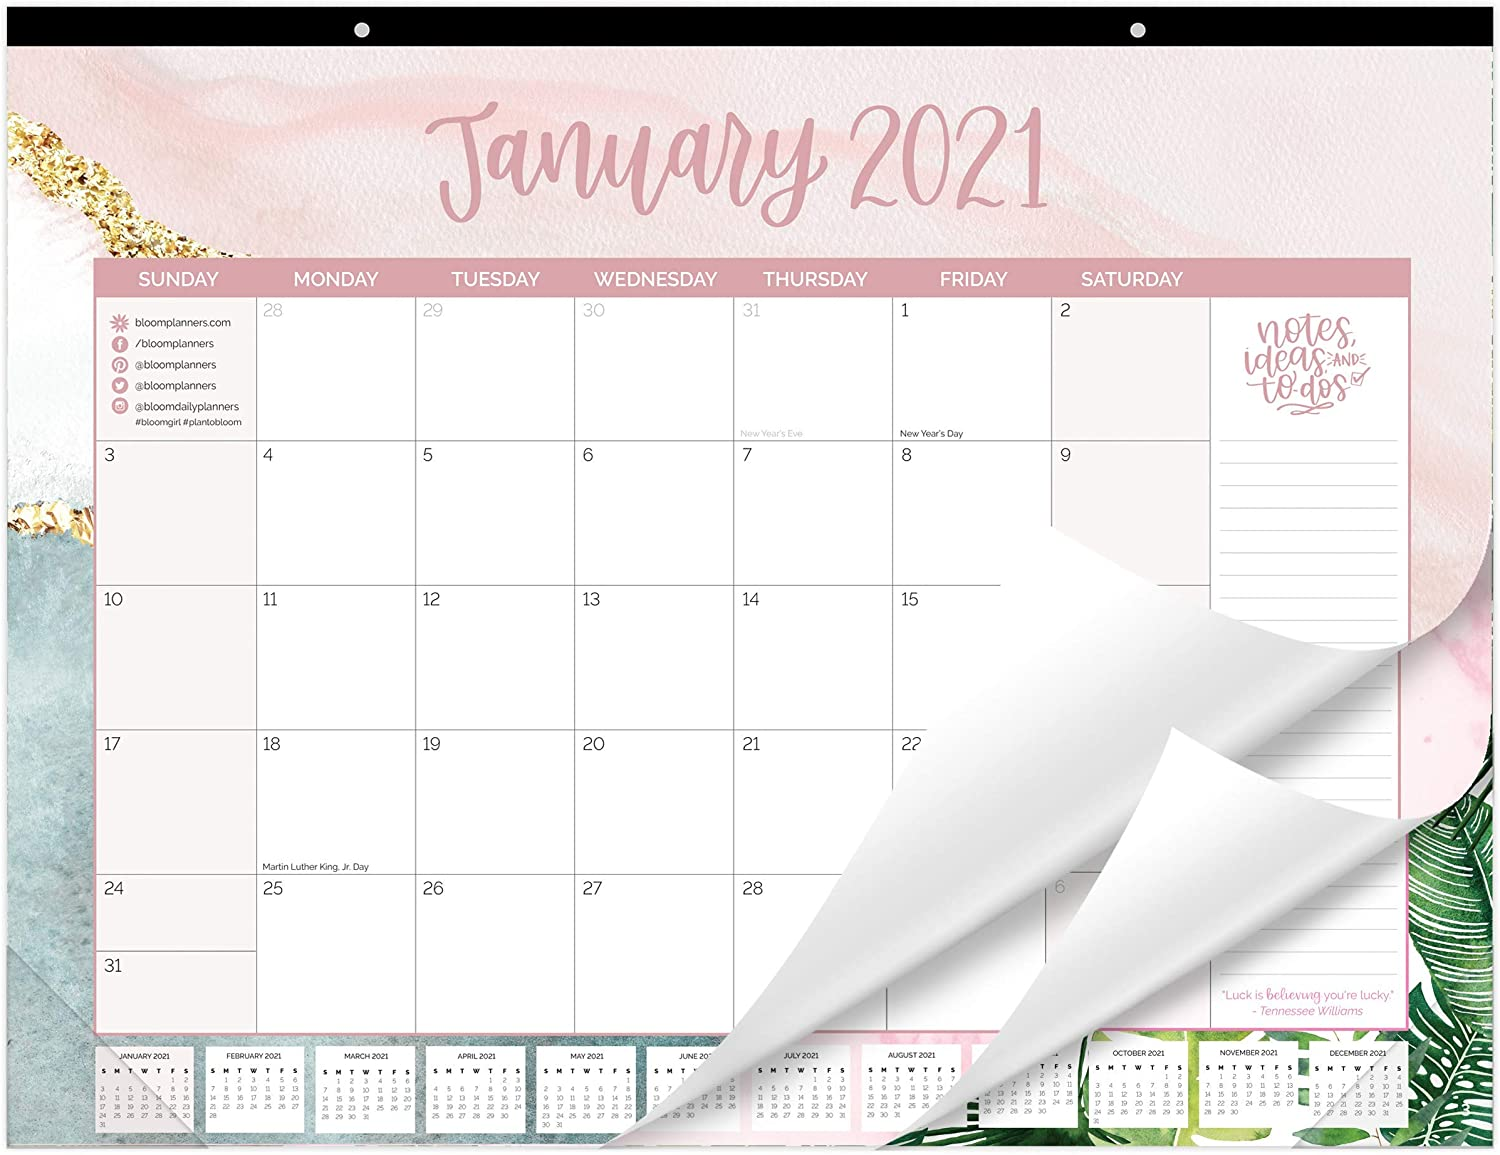 "bloom daily planners 2021 Calendar Year Desk/Wall Monthly Calendar Pad (January 2021 - December 2021) - Large 21"" x 16"" Hanging or Desktop Blotter - Multicolor"